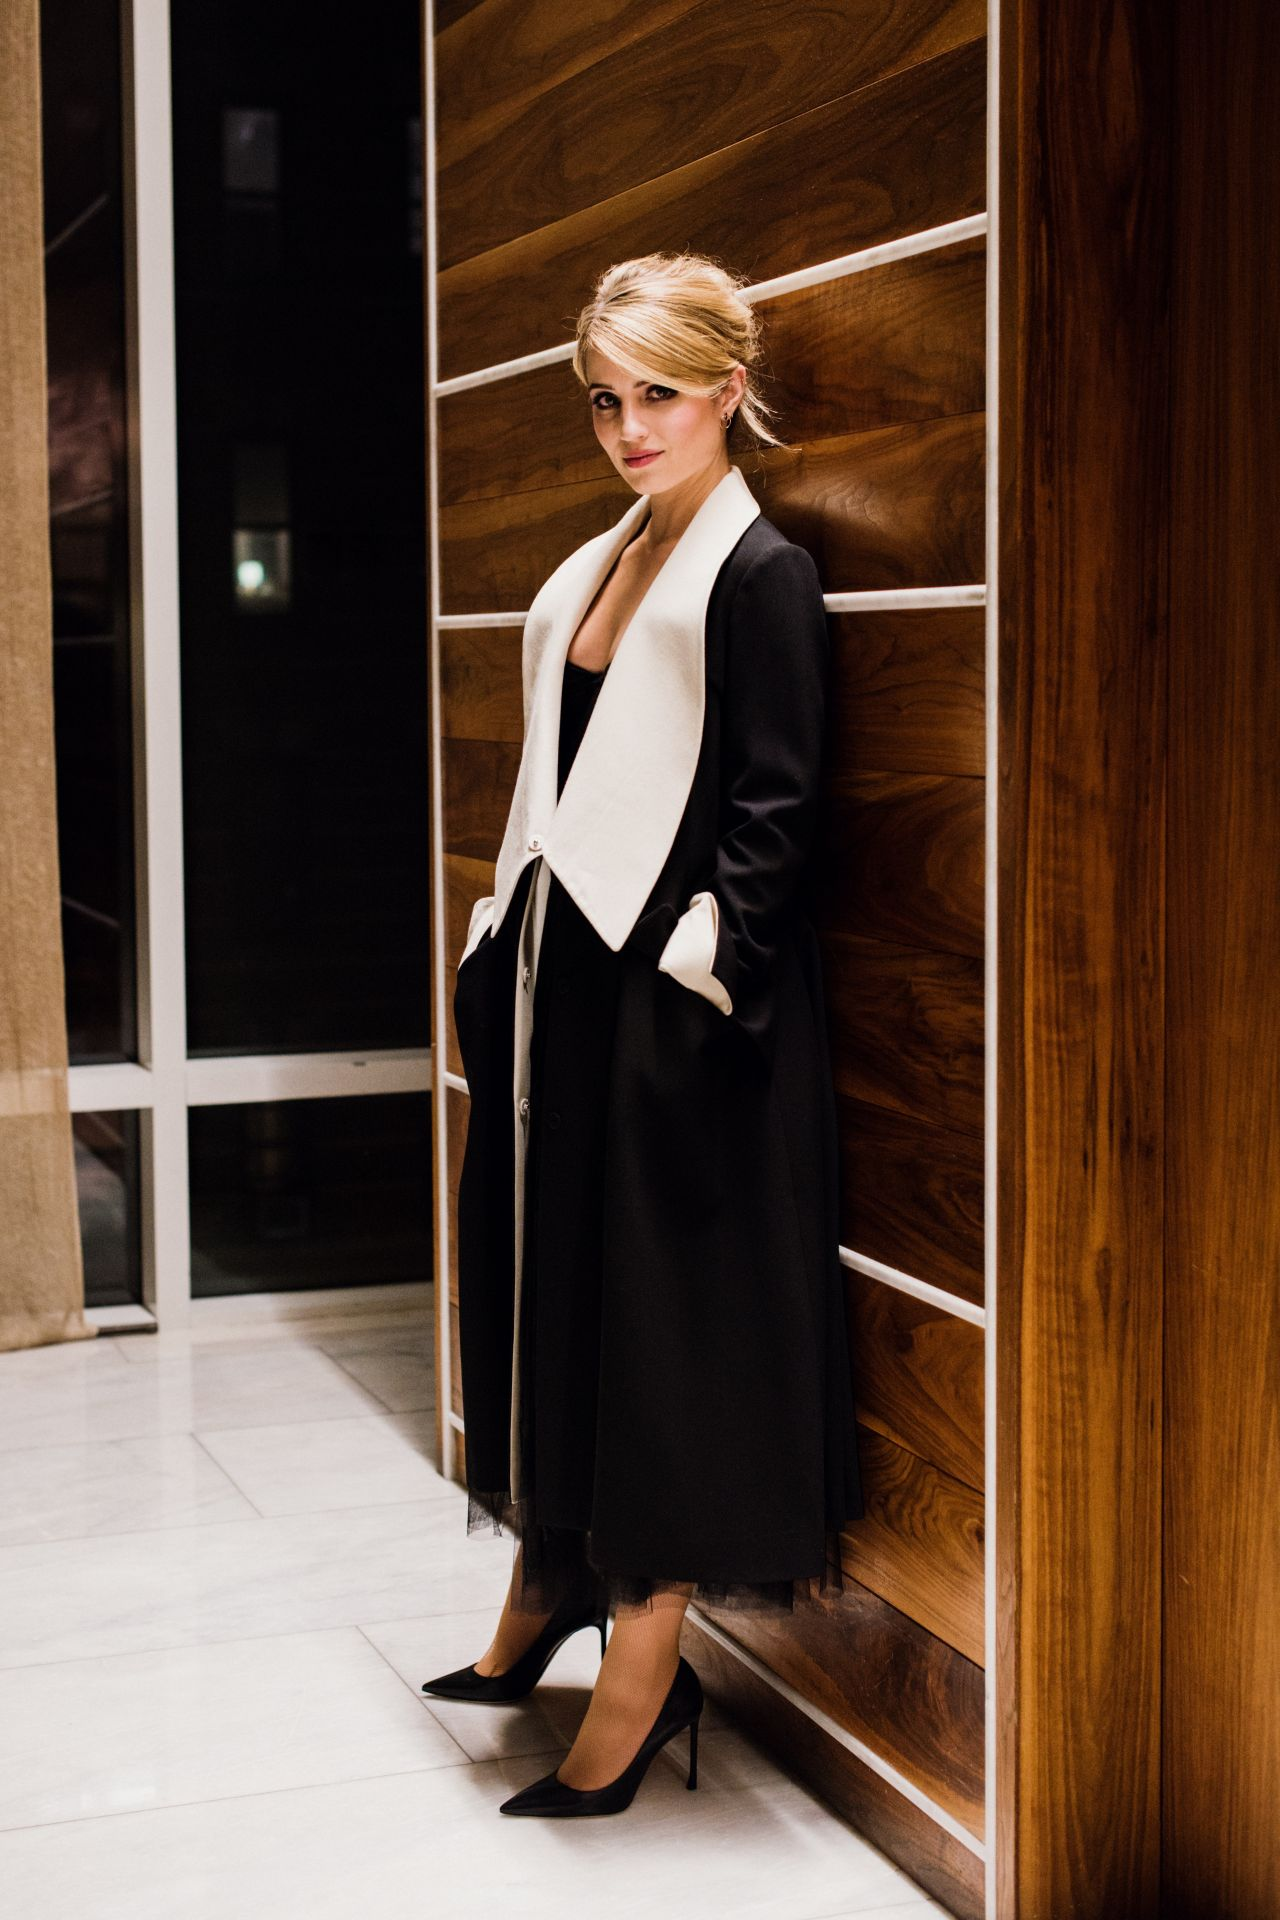 dianna agron 2017 - photo #43